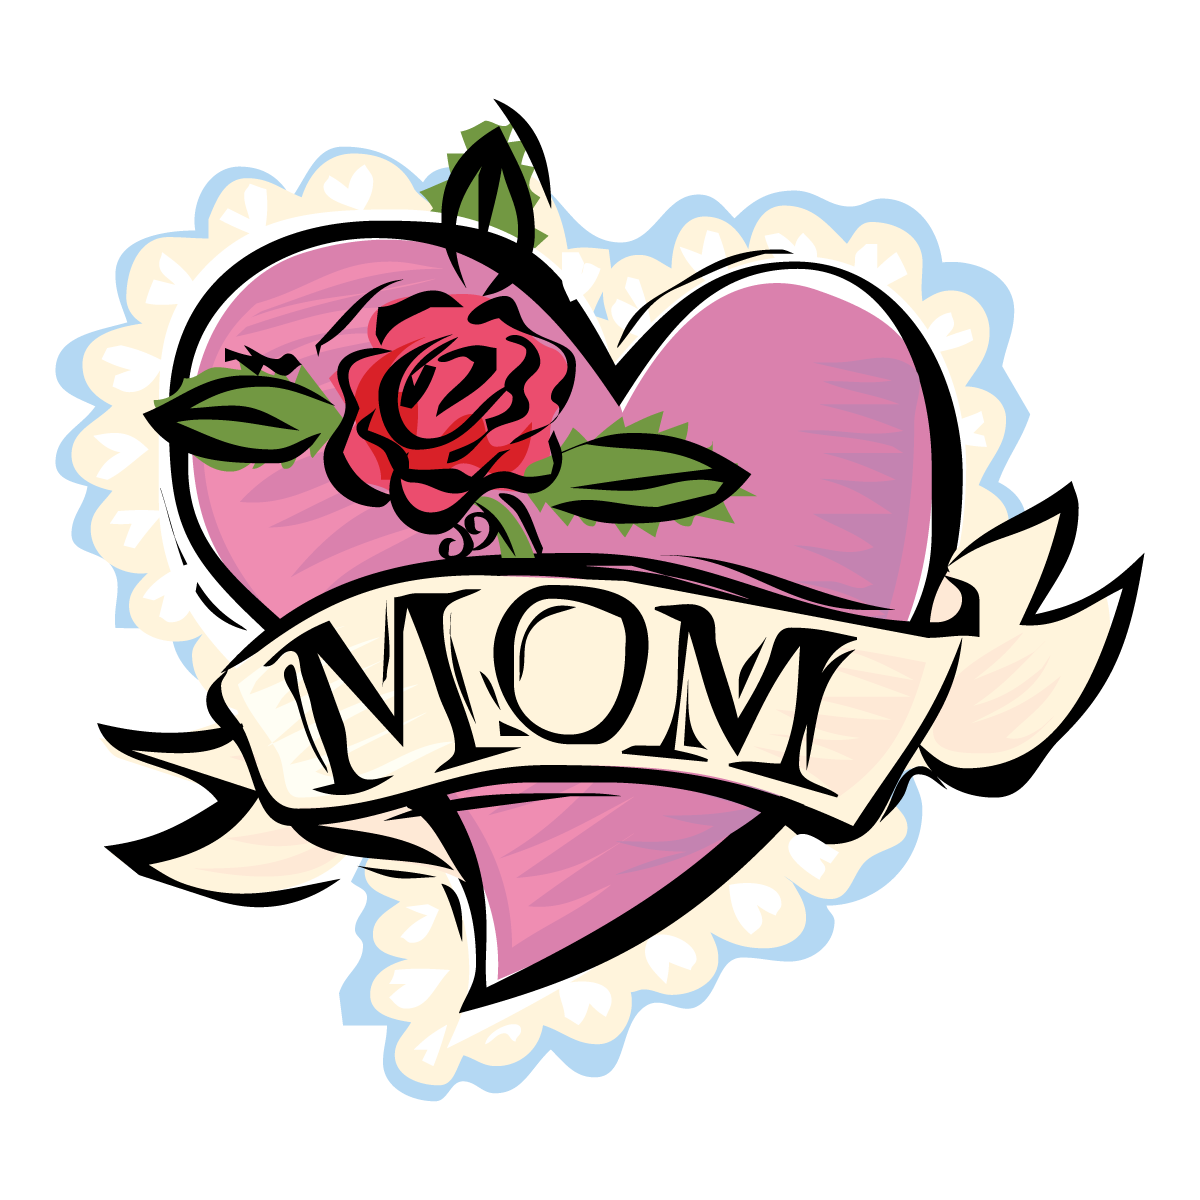 mothers day 2016 happy mothers day clipart mother's day clipart free devotions mother day clip art with a religious theme